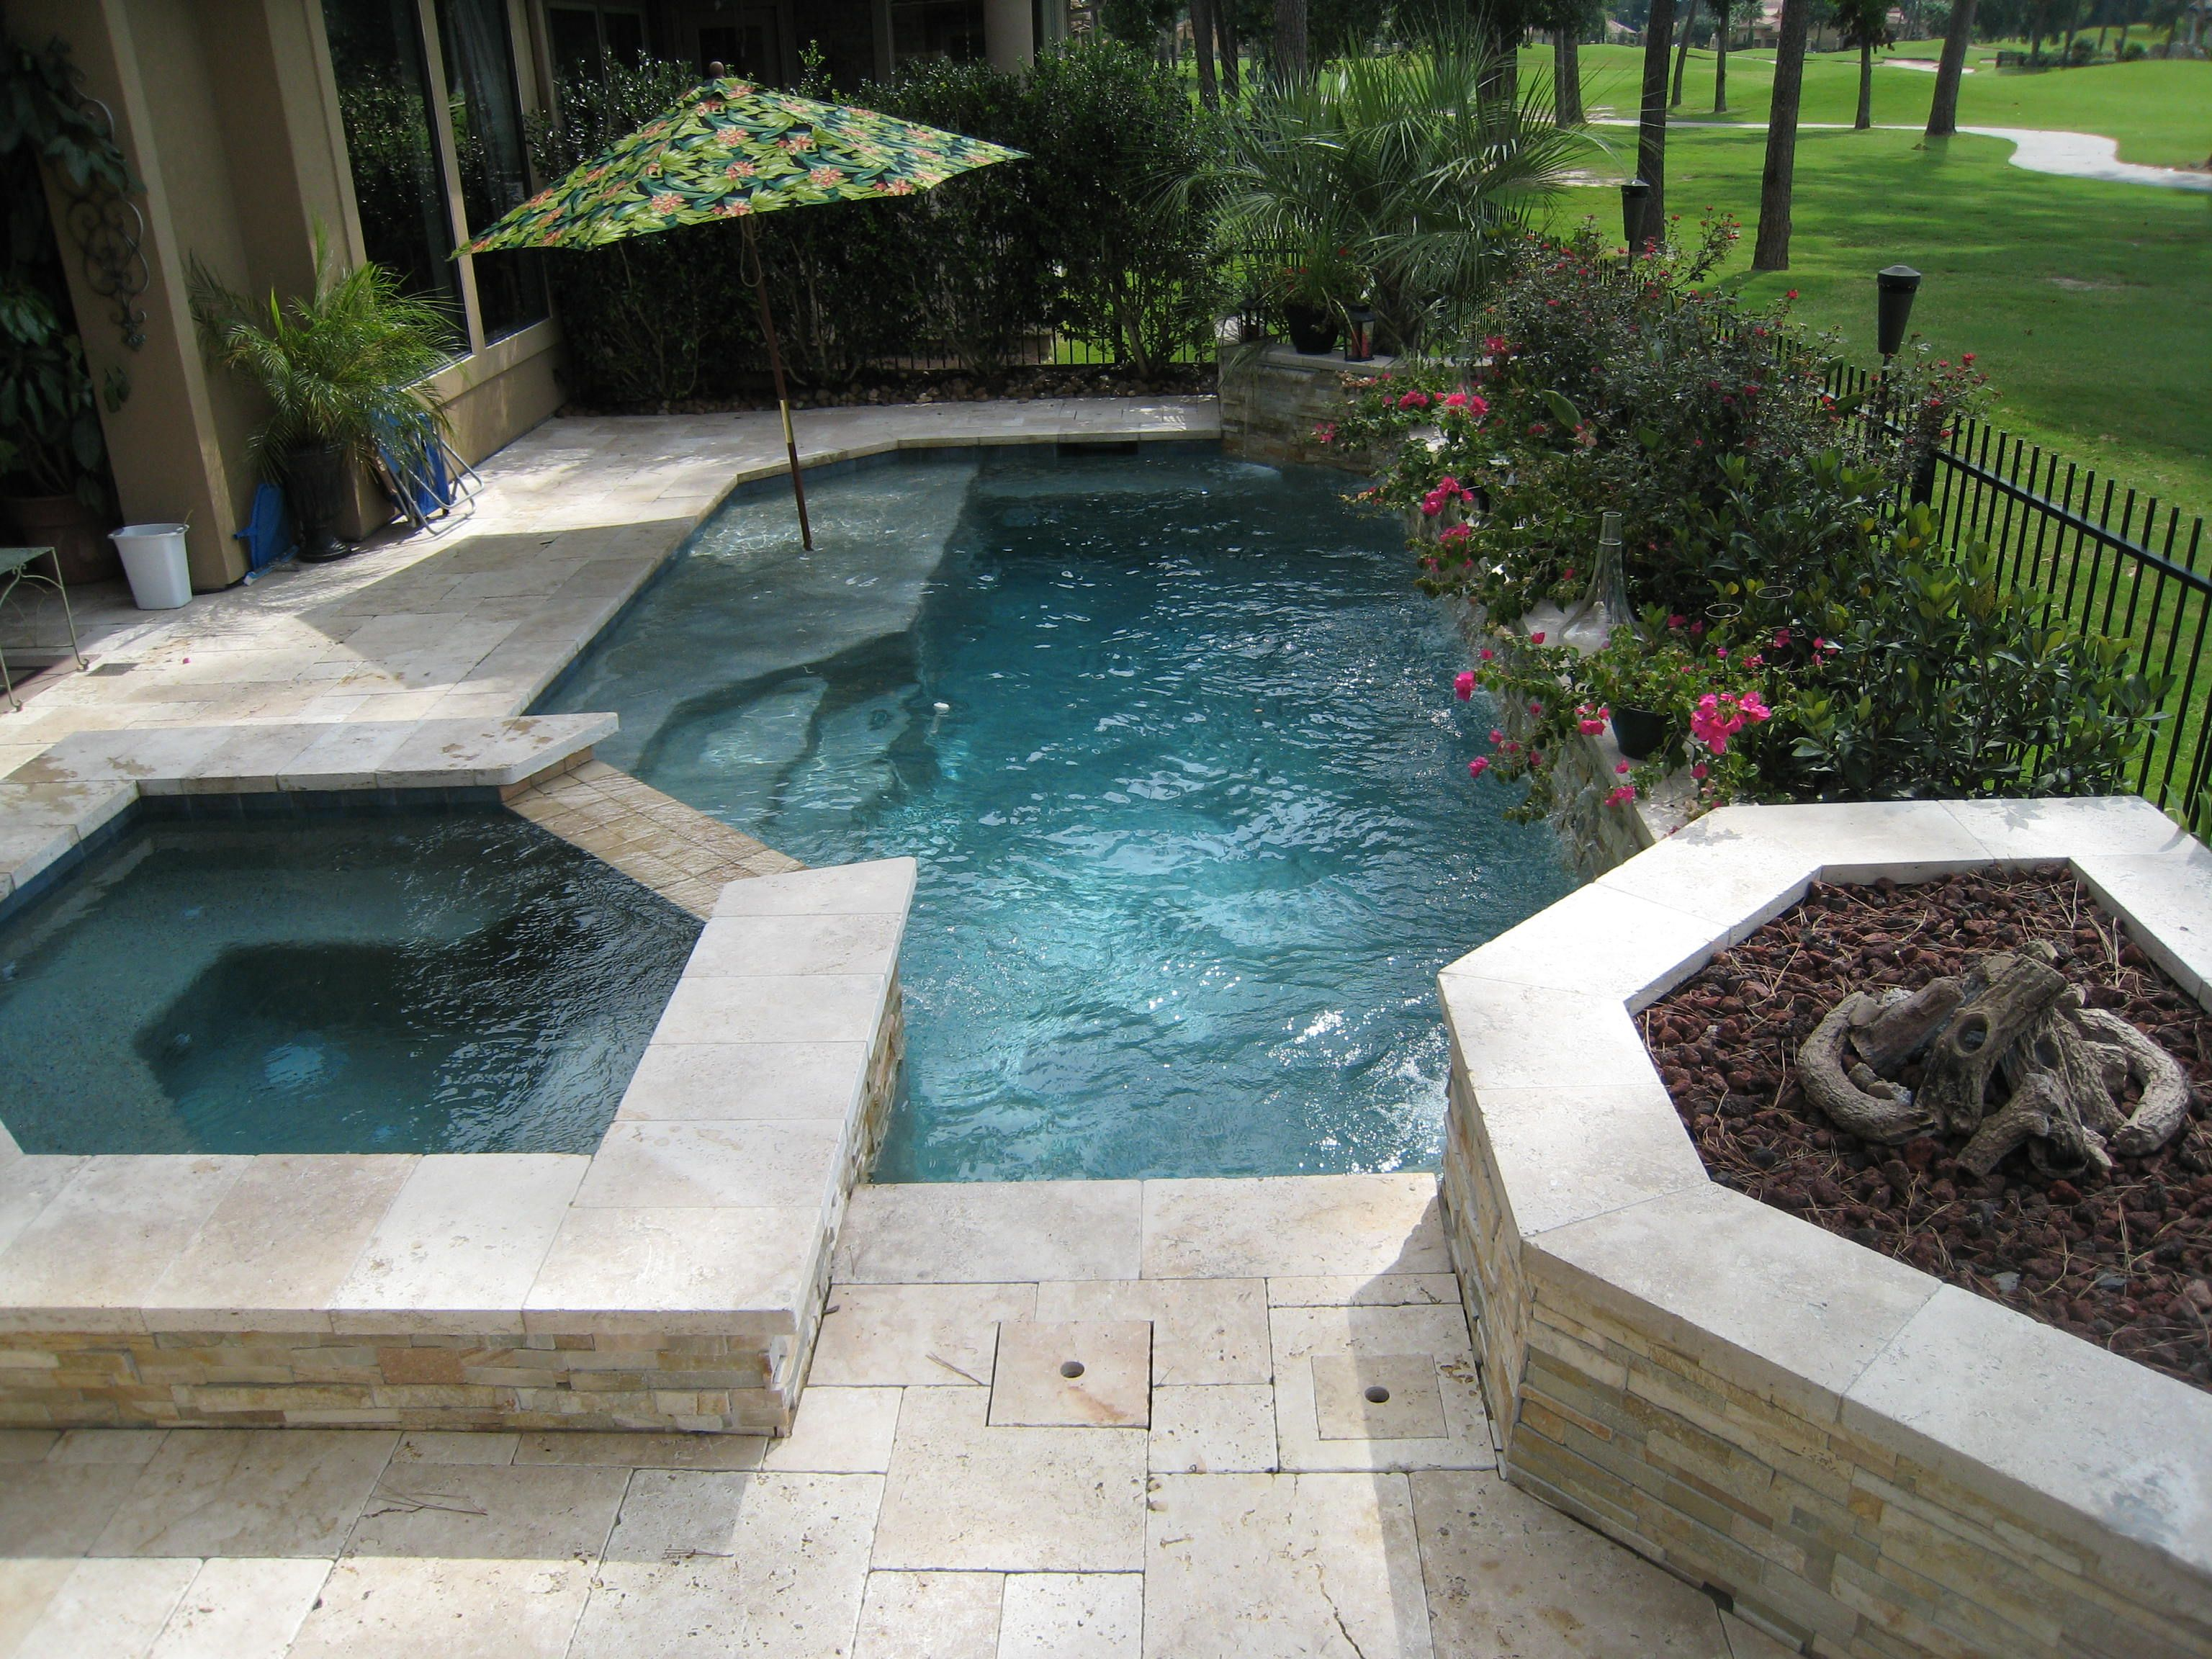 Small Space With Everything You Need, Spa, Firepit And Tanning